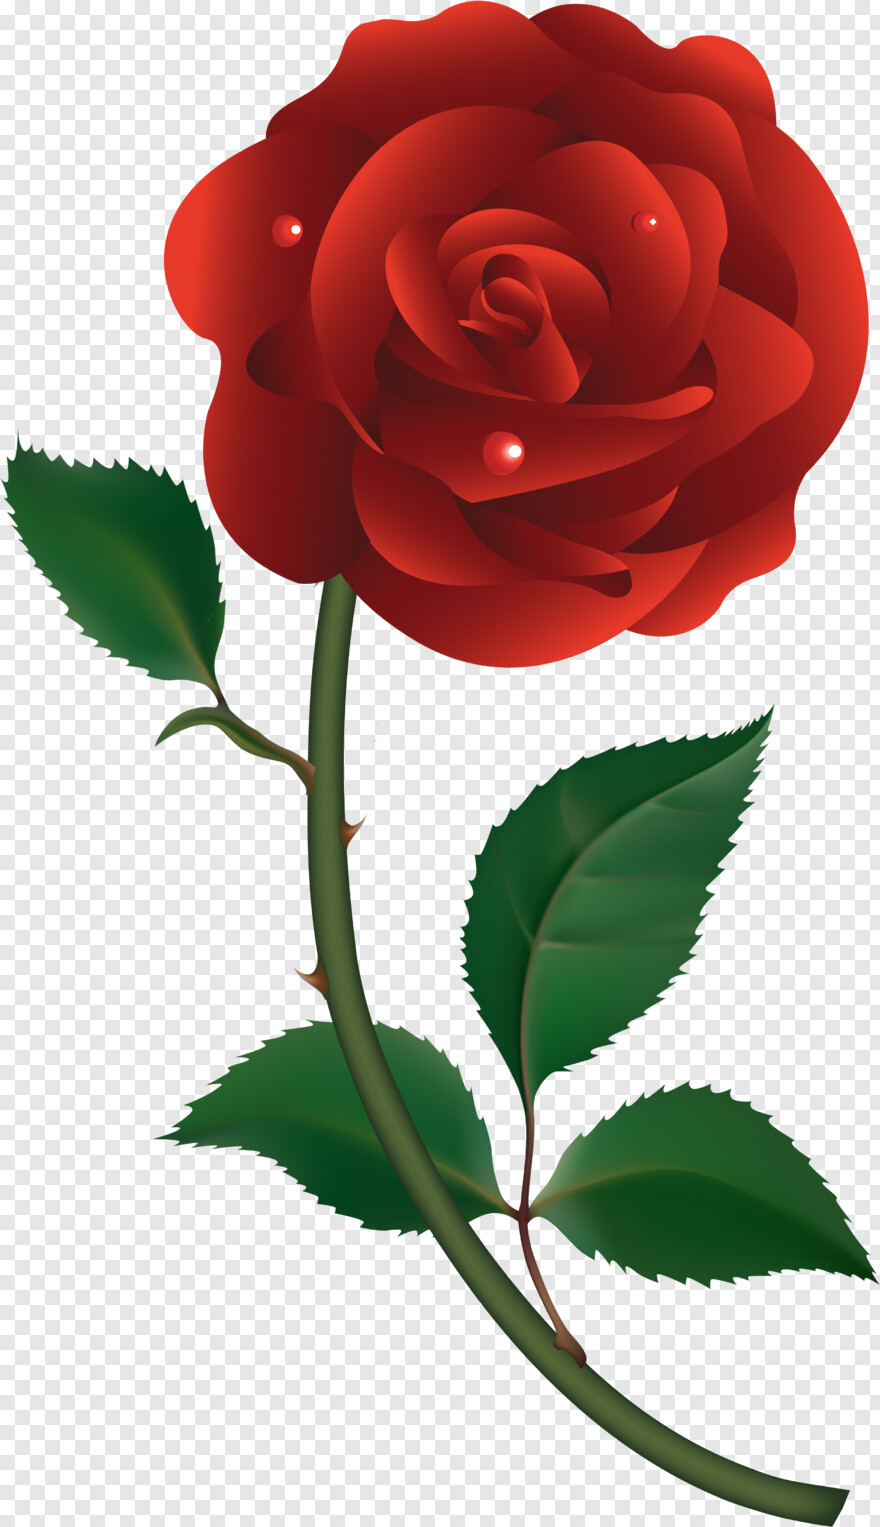 Flower Vector - Red Rose Vector Png, HD Png Download